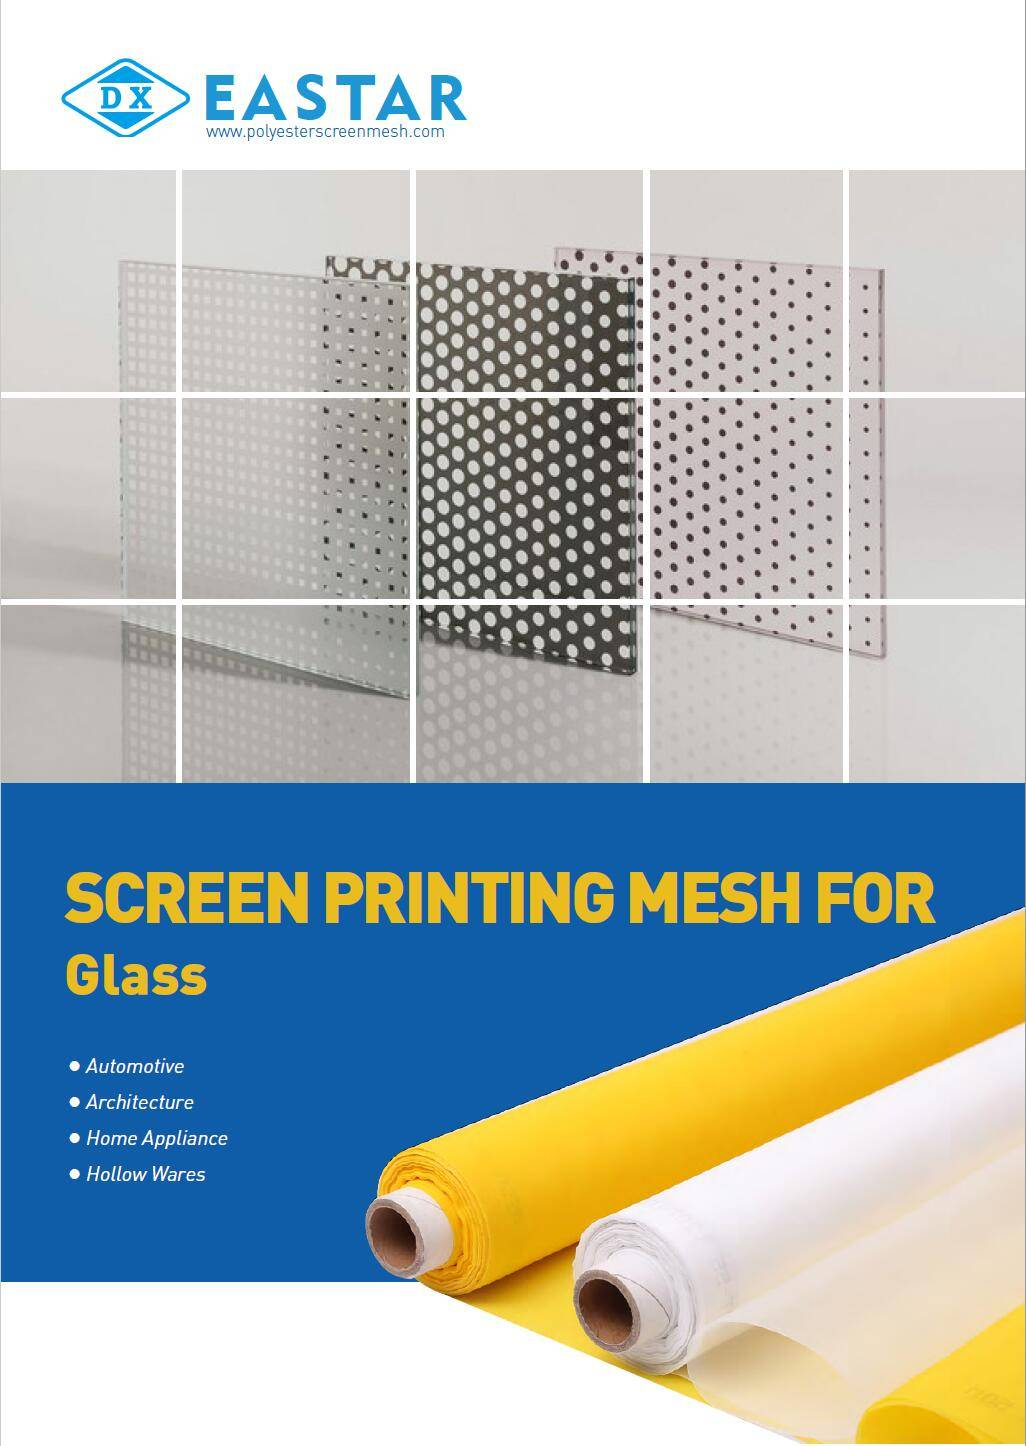 Polyester screen printing mesh for glass screen printing.